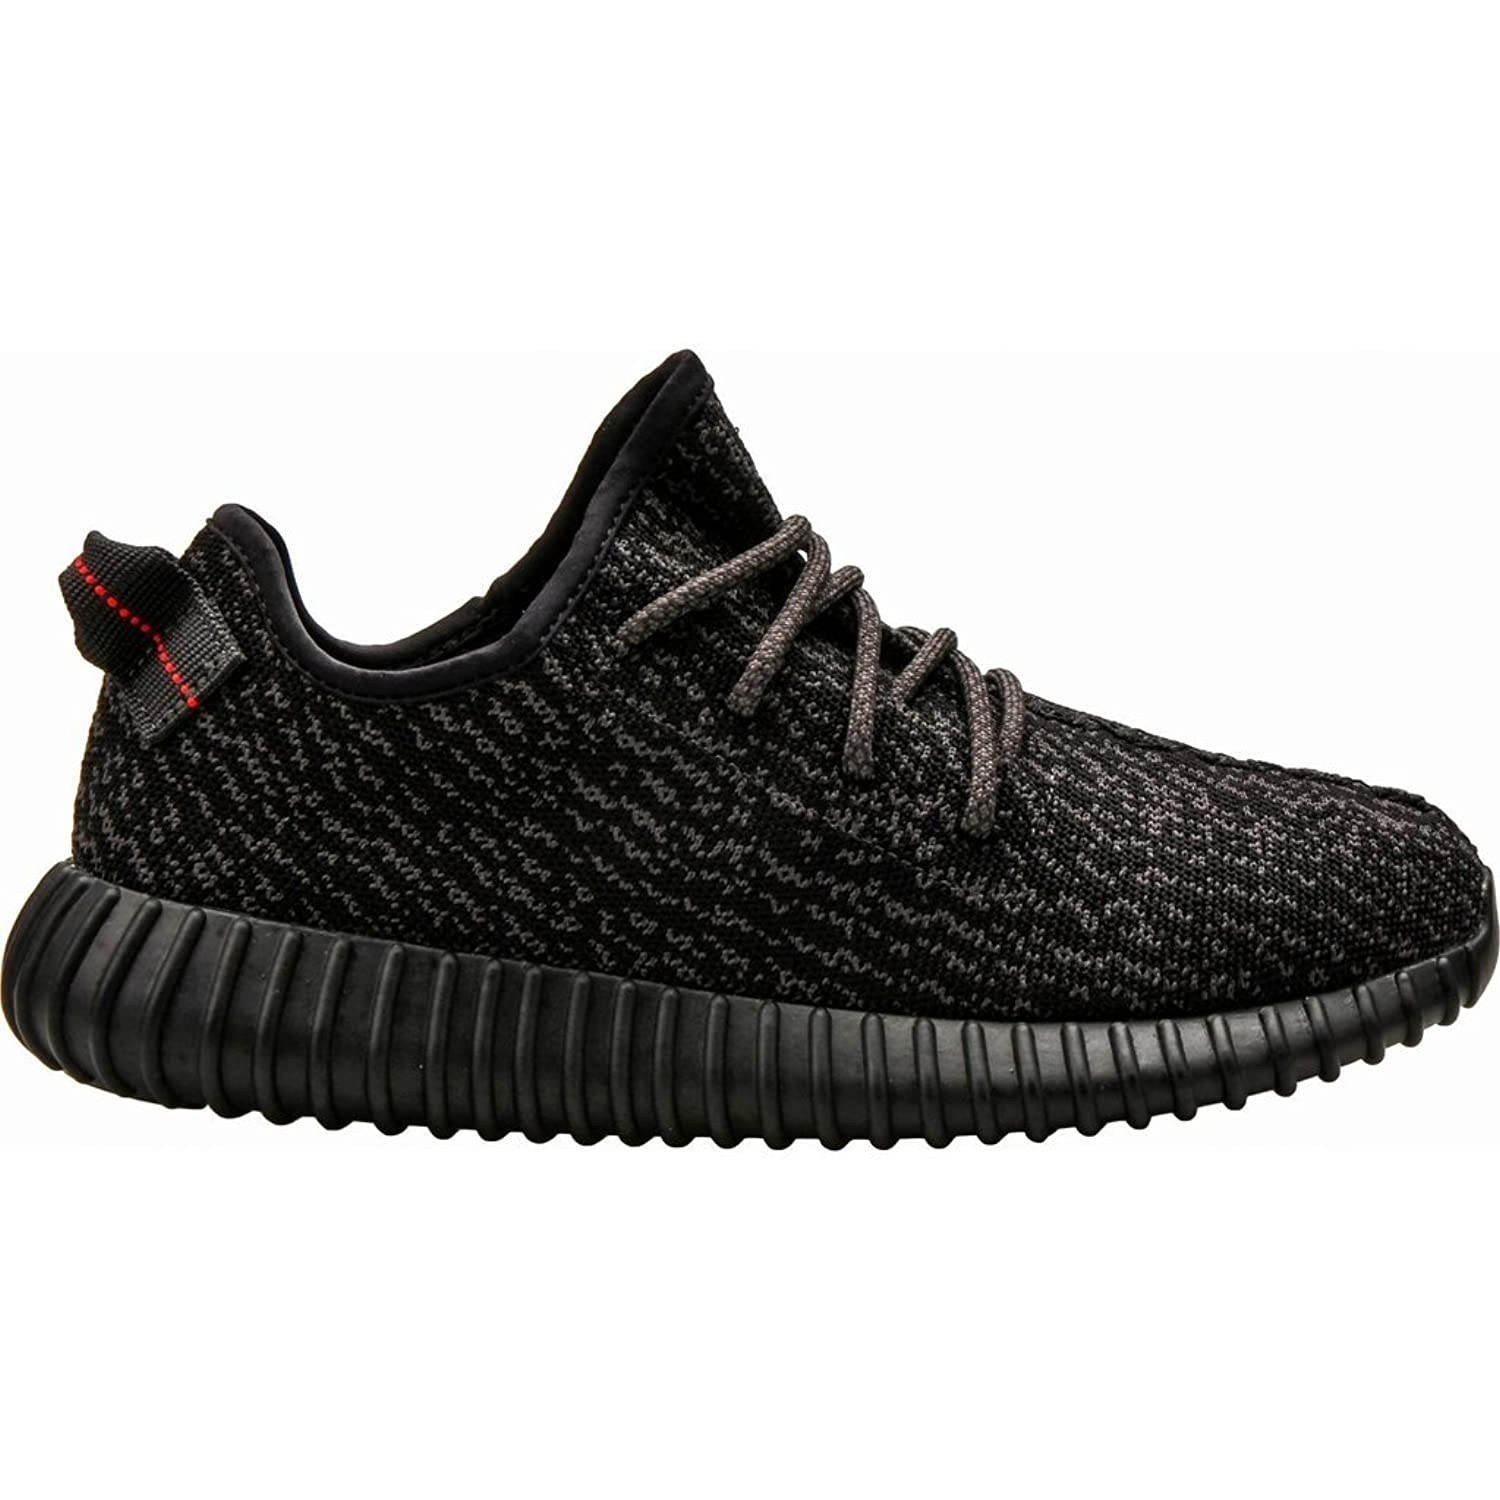 Adidas Men Yeezy Boost 350- Limited stock Black Fabric US 11.5: Amazon.ca:  Sports \u0026 Outdoors